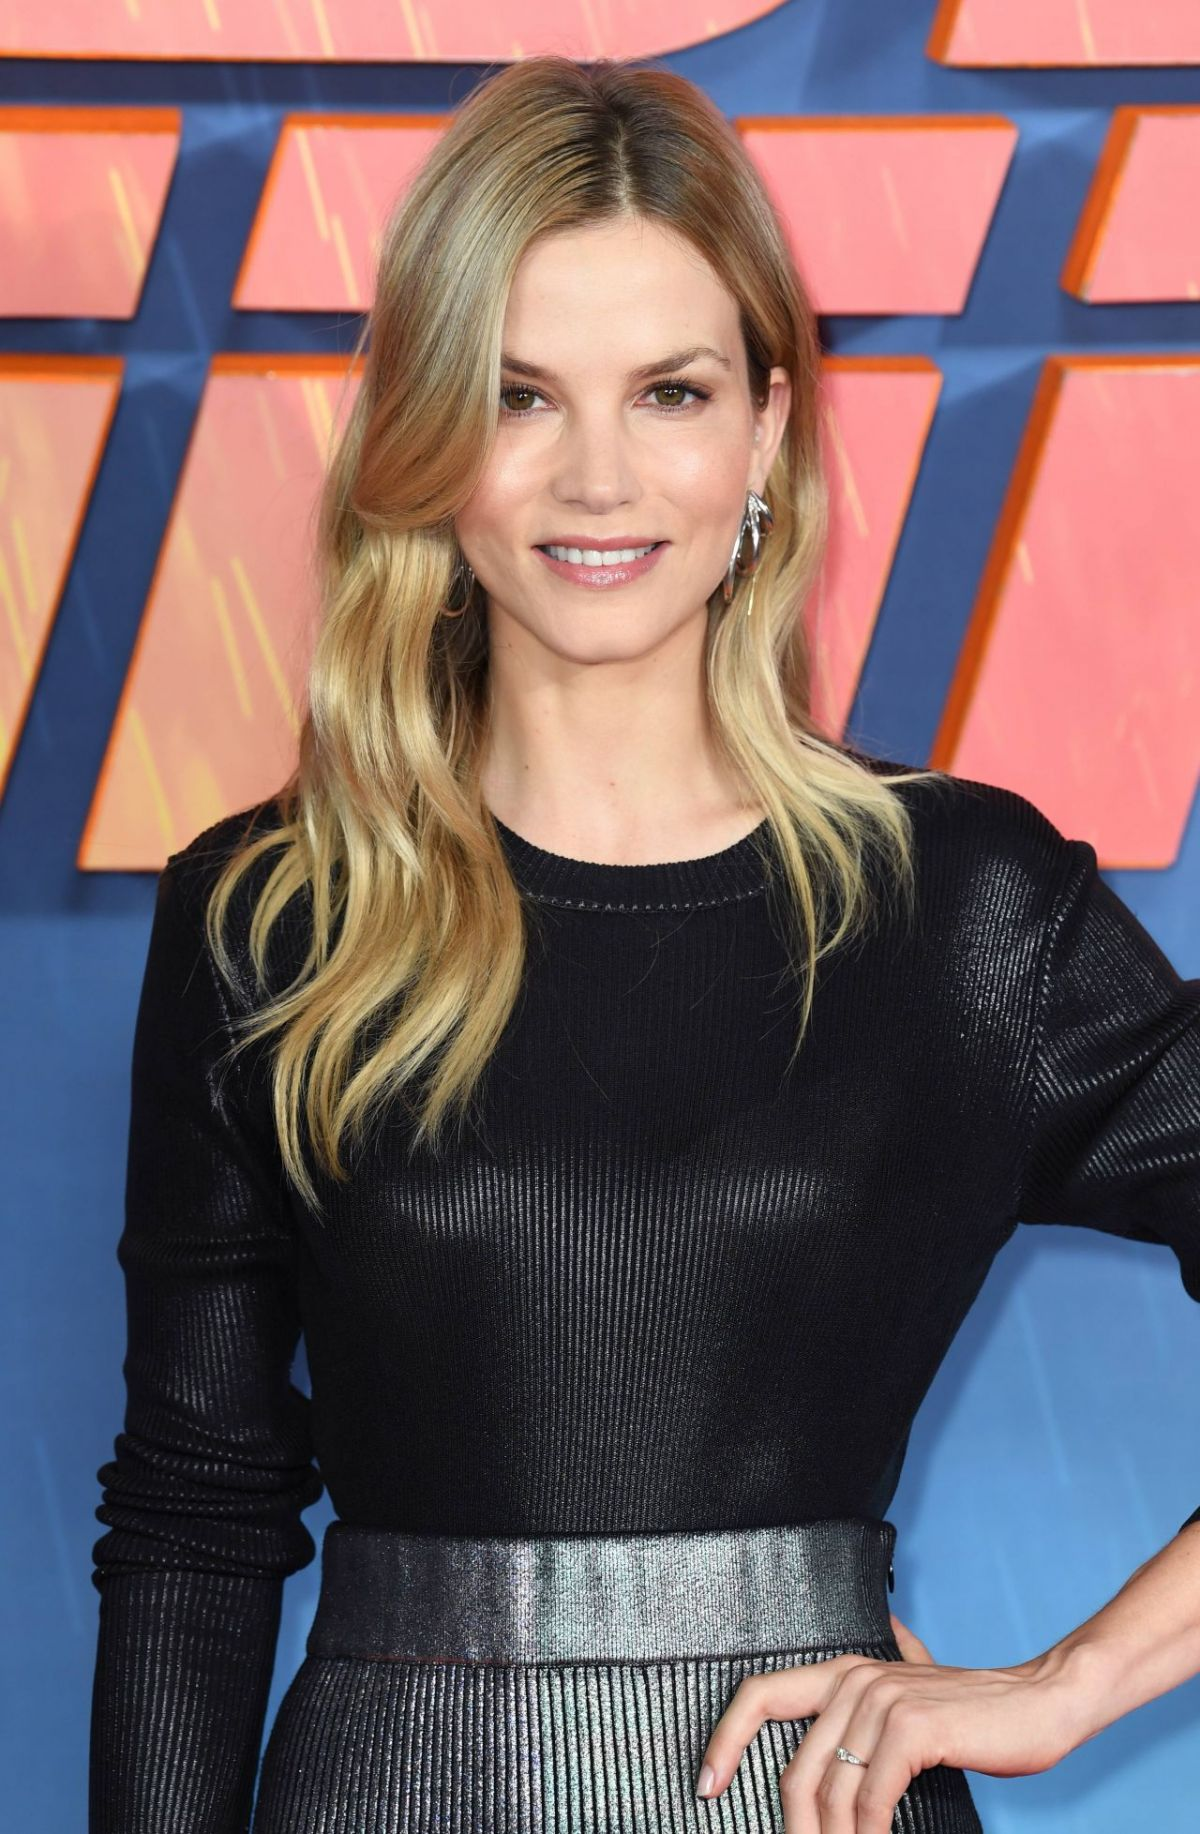 SYLVIA HOEKS at Bade Runner 2049 Photocall in London 09/21/2017